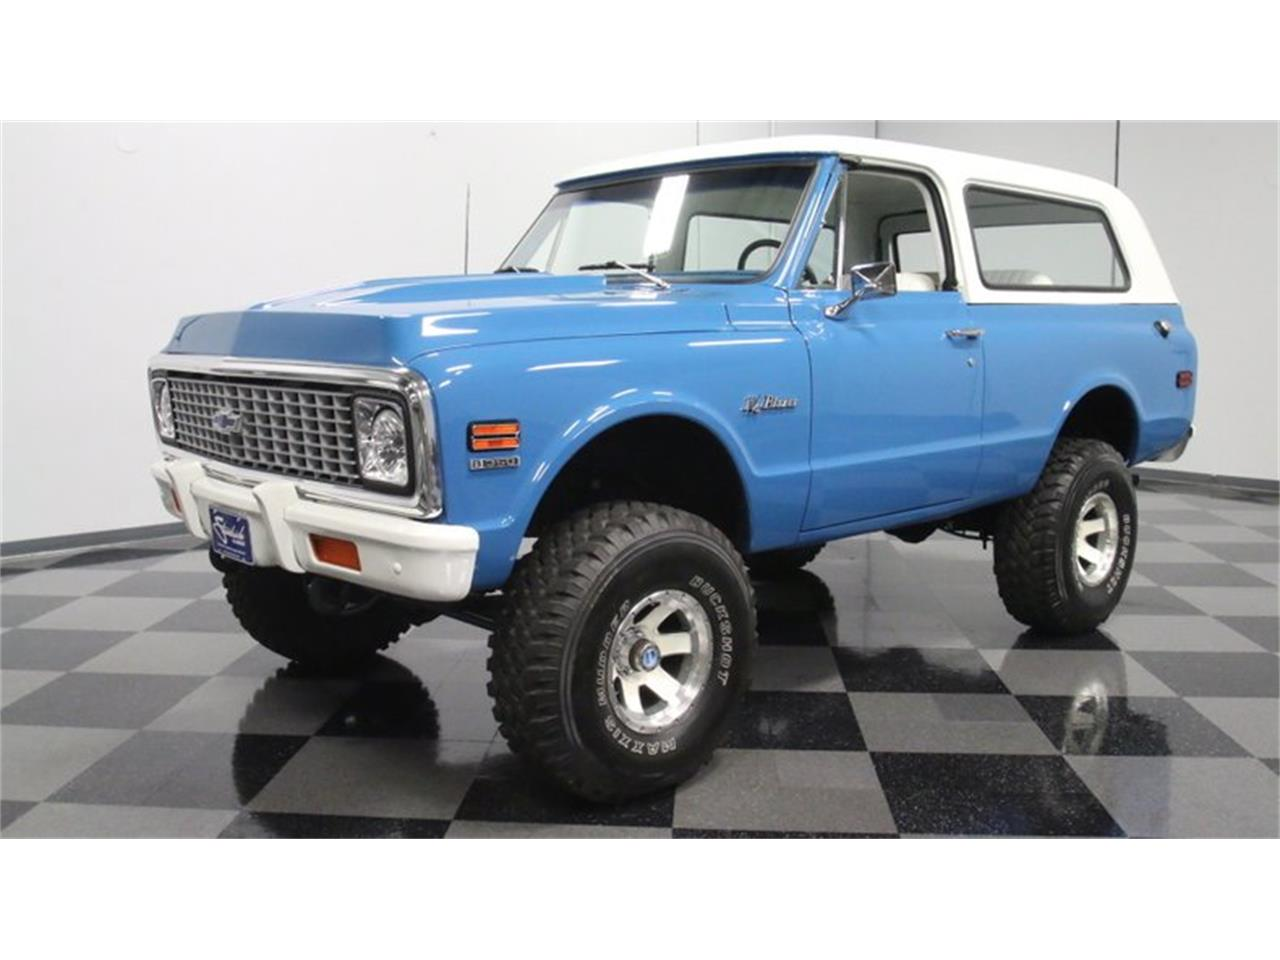 Large Picture of Classic '71 Chevrolet Blazer located in Georgia - $52,995.00 - PZLZ